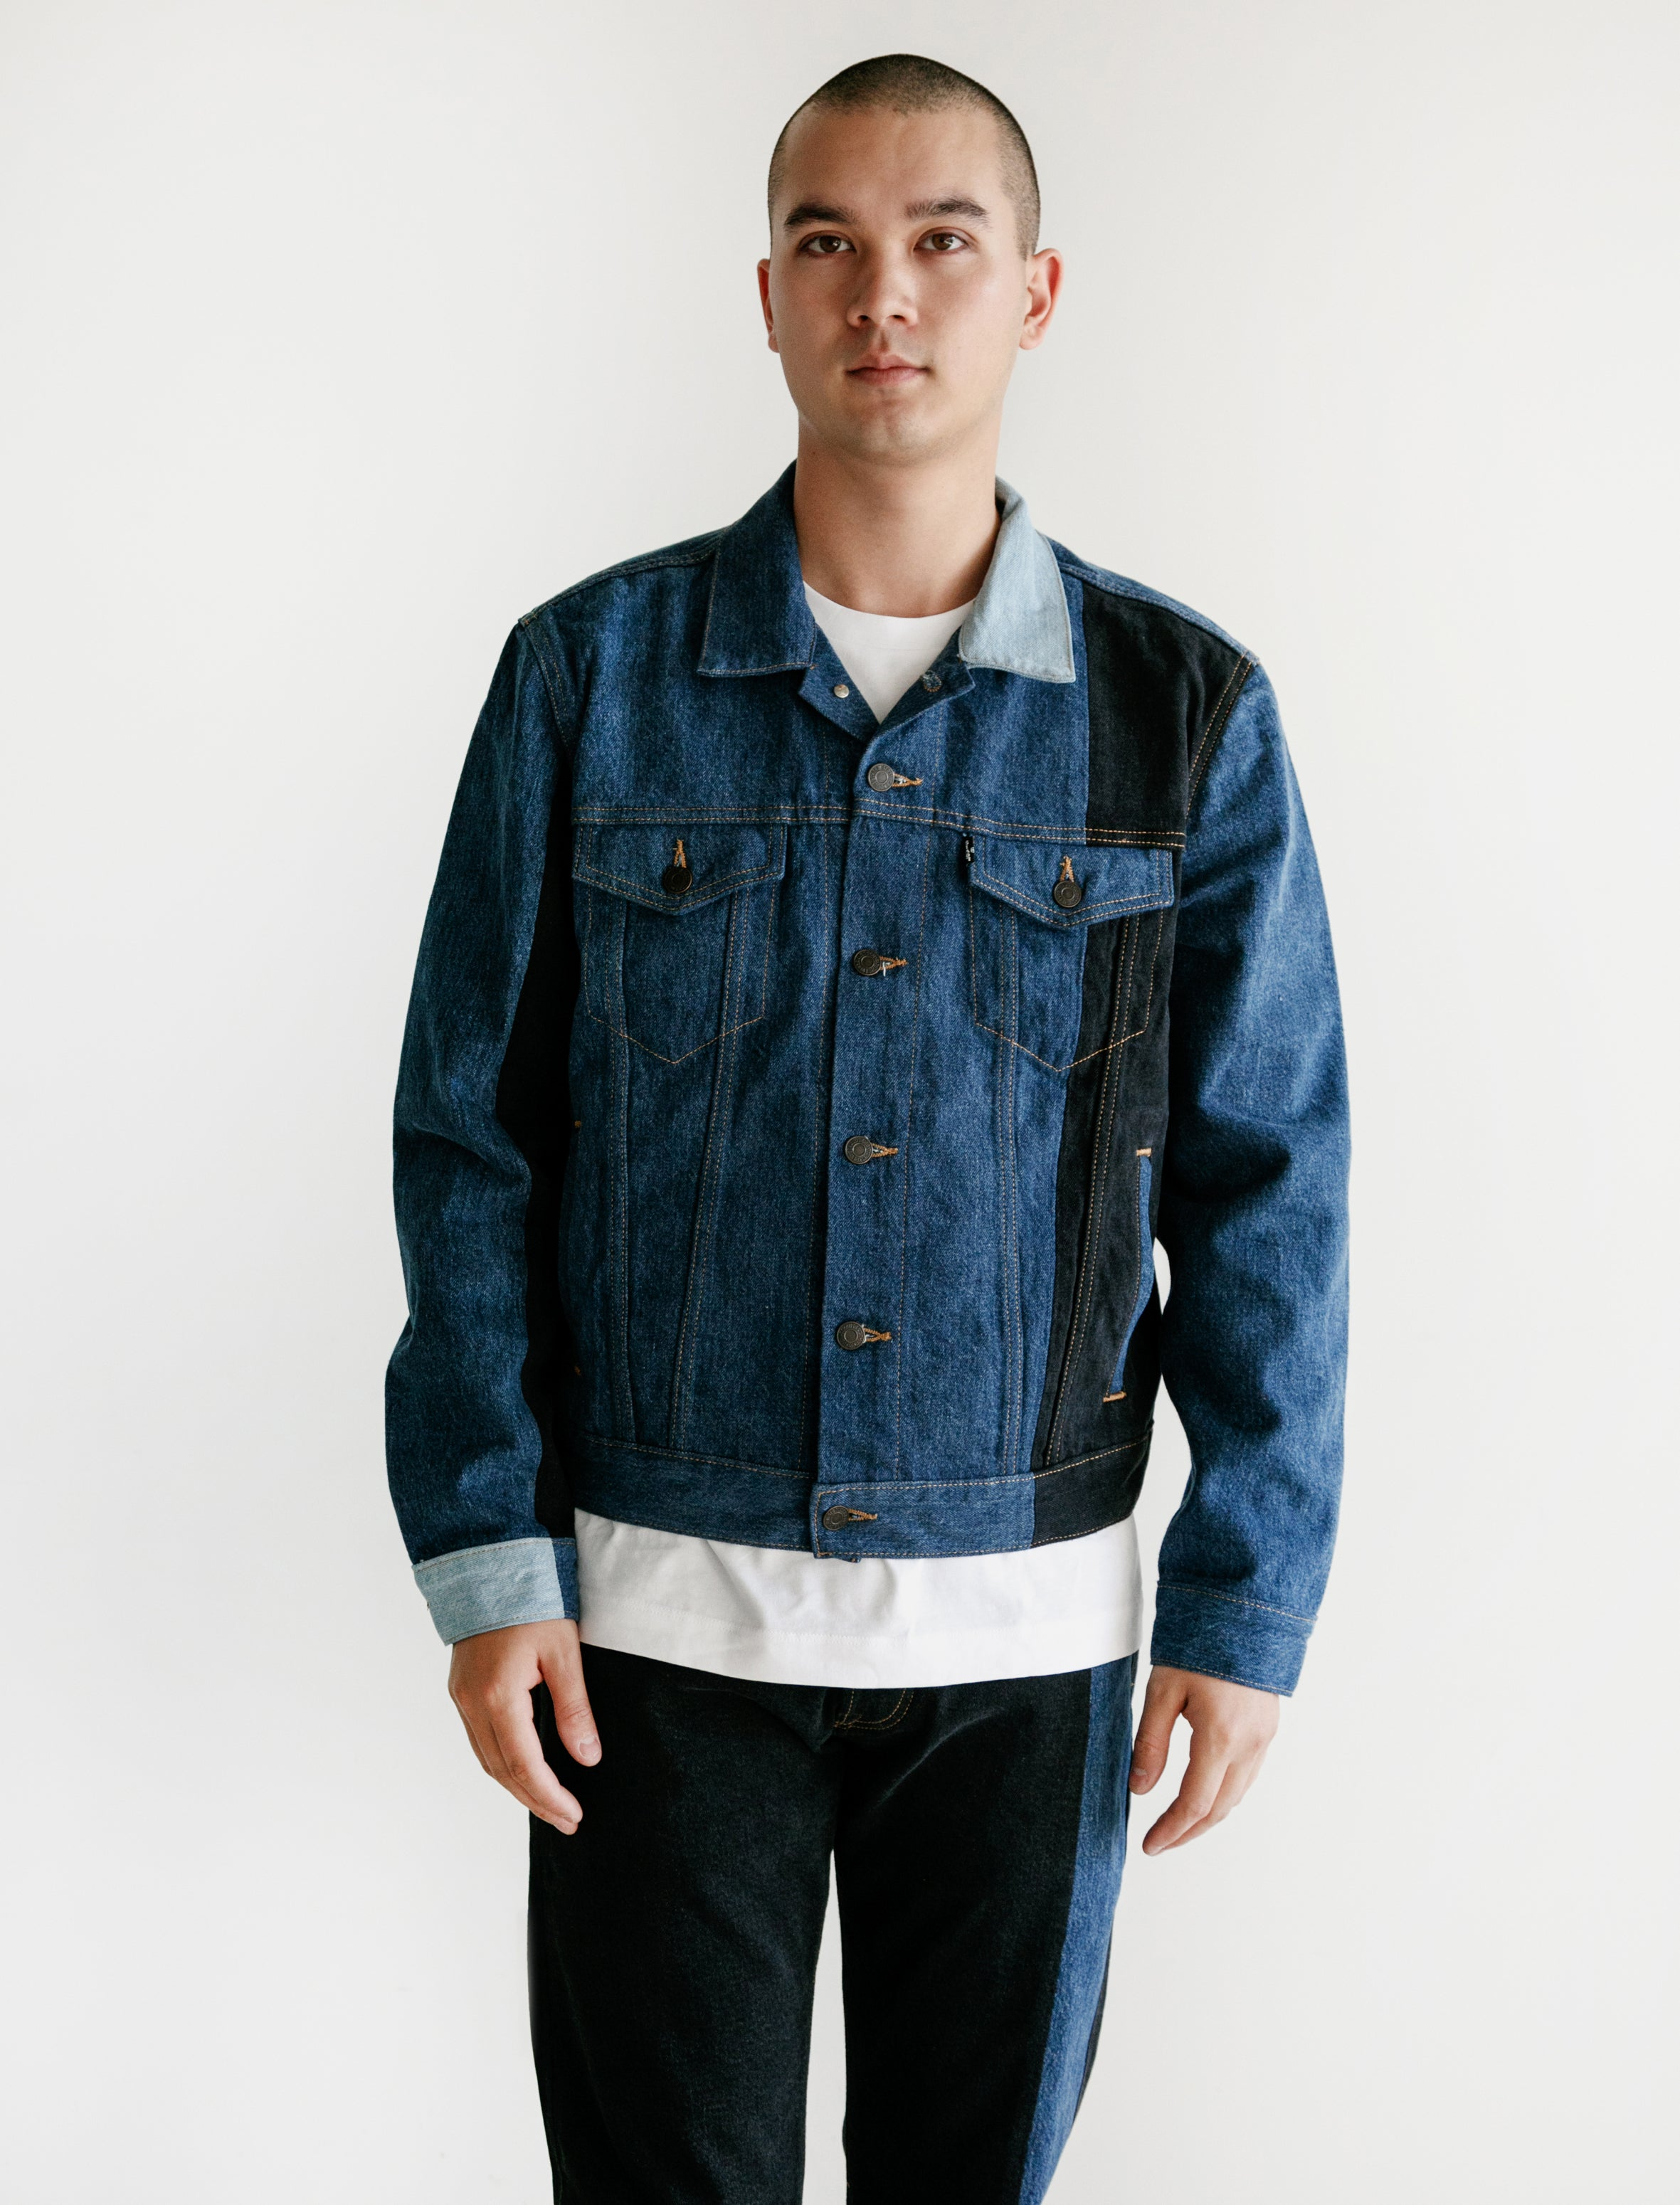 on sale bed78 6ebca Gosha Rubchinskiy Levis Patchwork Jacket Navy